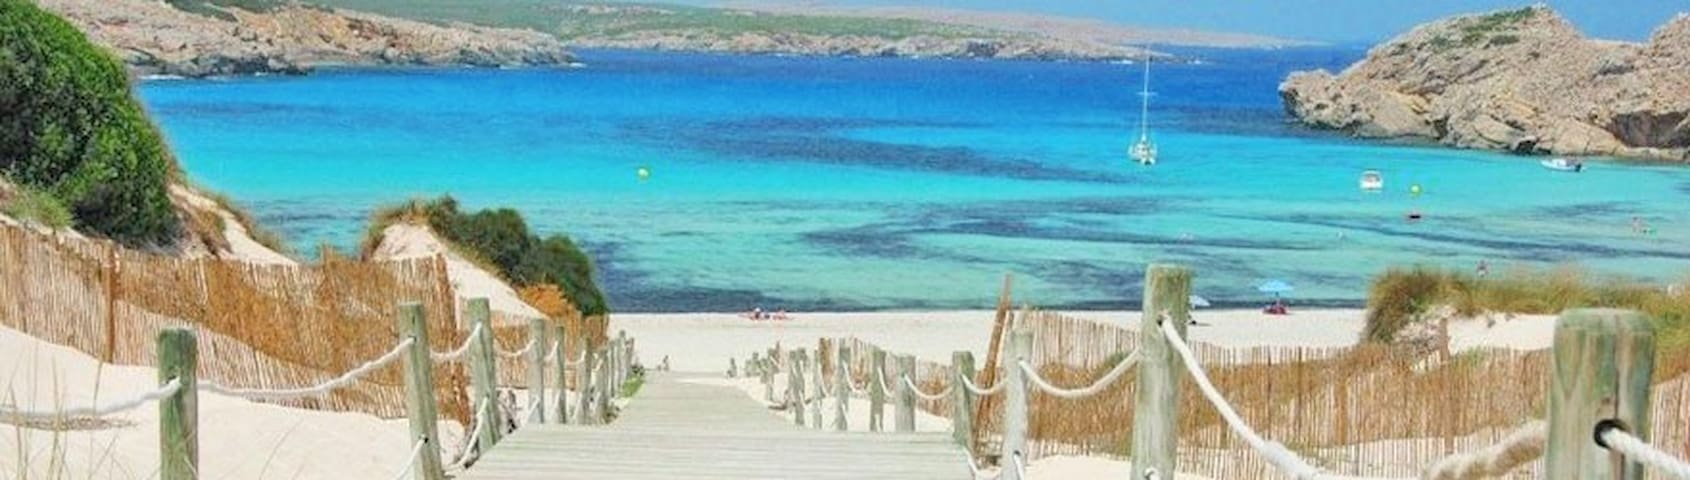 Playa y golf en Menorca - Son Parc - Pis